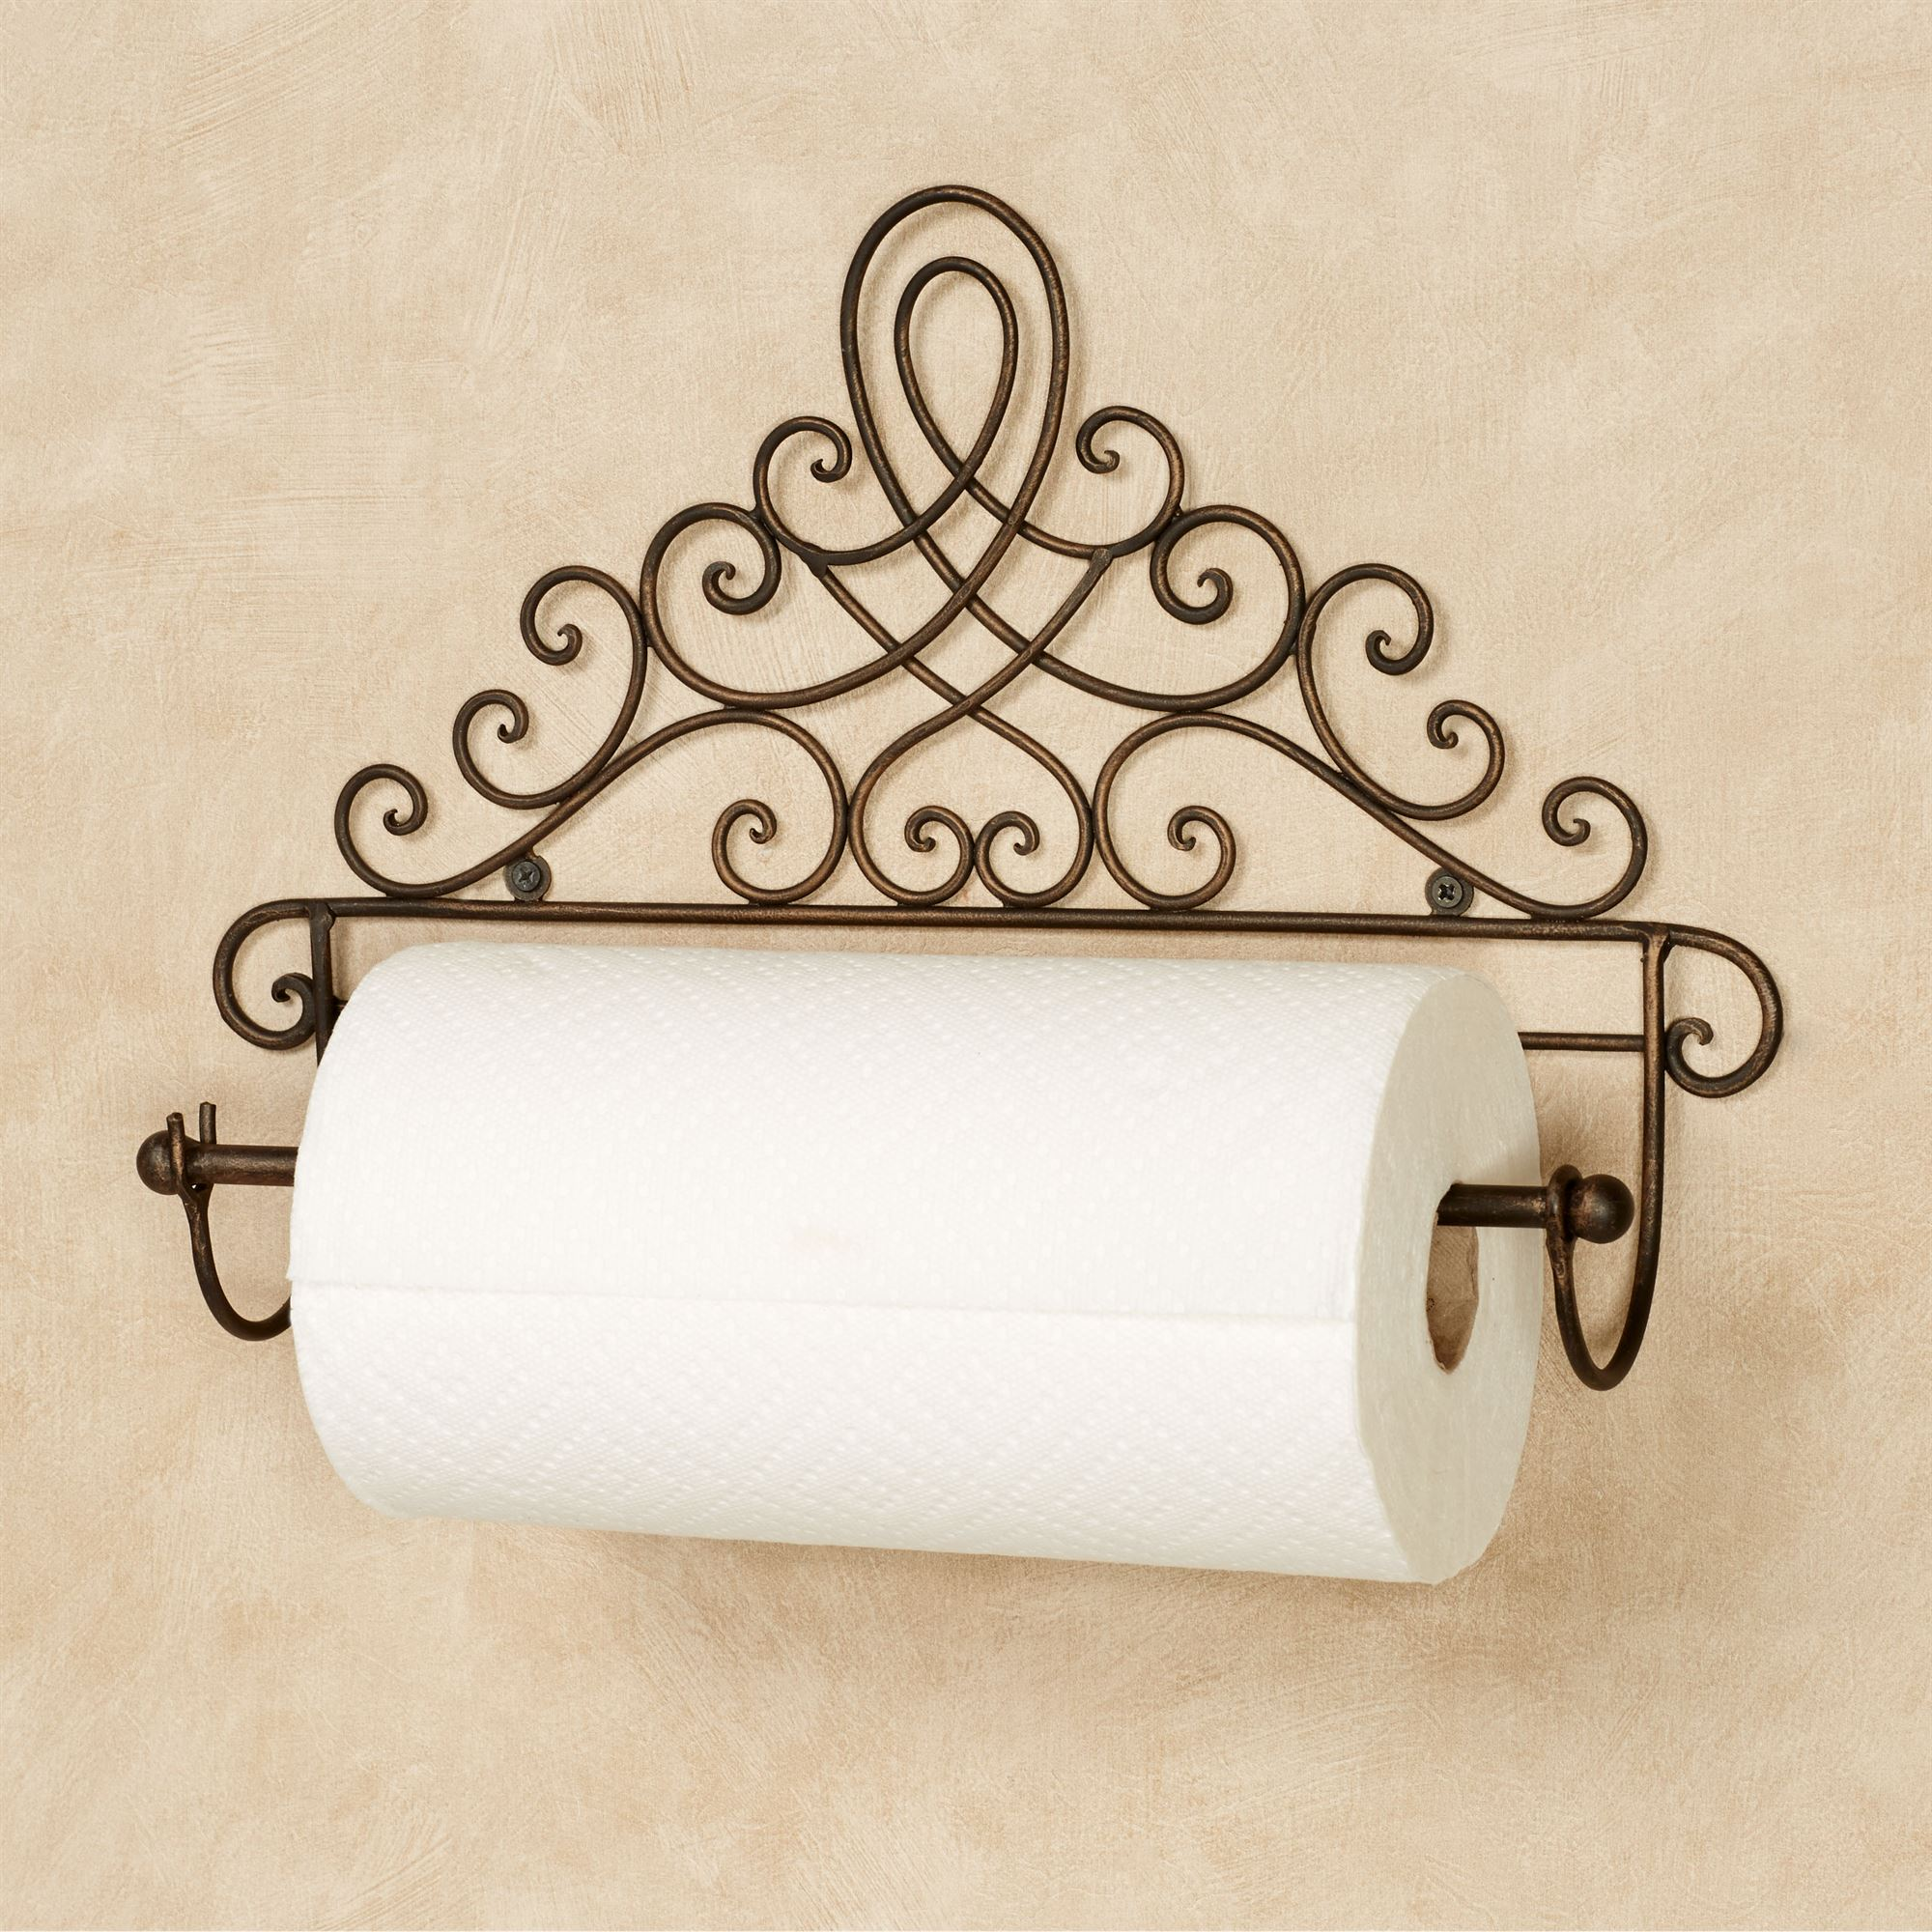 Coria Antique Bronze Wall Mount Paper Towel Holder